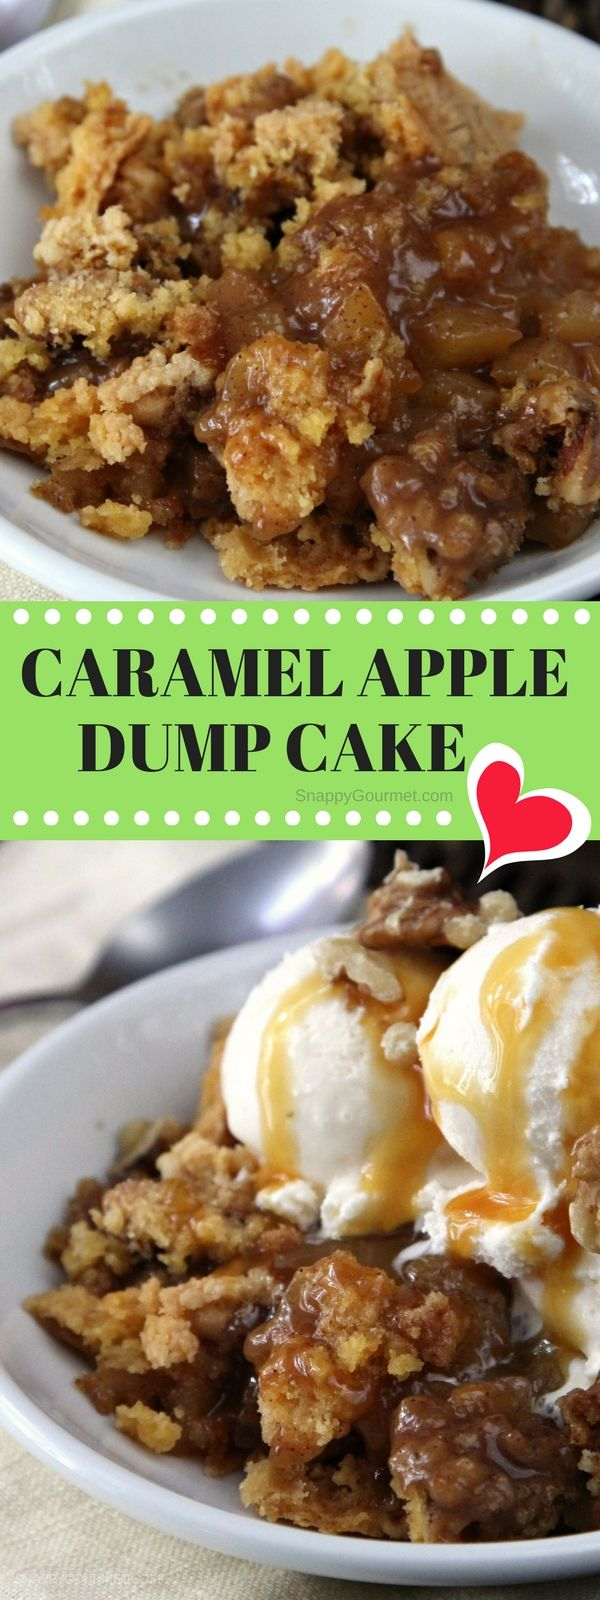 Caramel Apple Dump Cake Recipe - easy dessert perfect for Thanksgiving or Christmas with only 6 ingredients including fresh apples, cake mix, and caramel! #SnappyGourmet #dumpcake #thanksgivingdessert #Cake #Dessert #Caramelapple